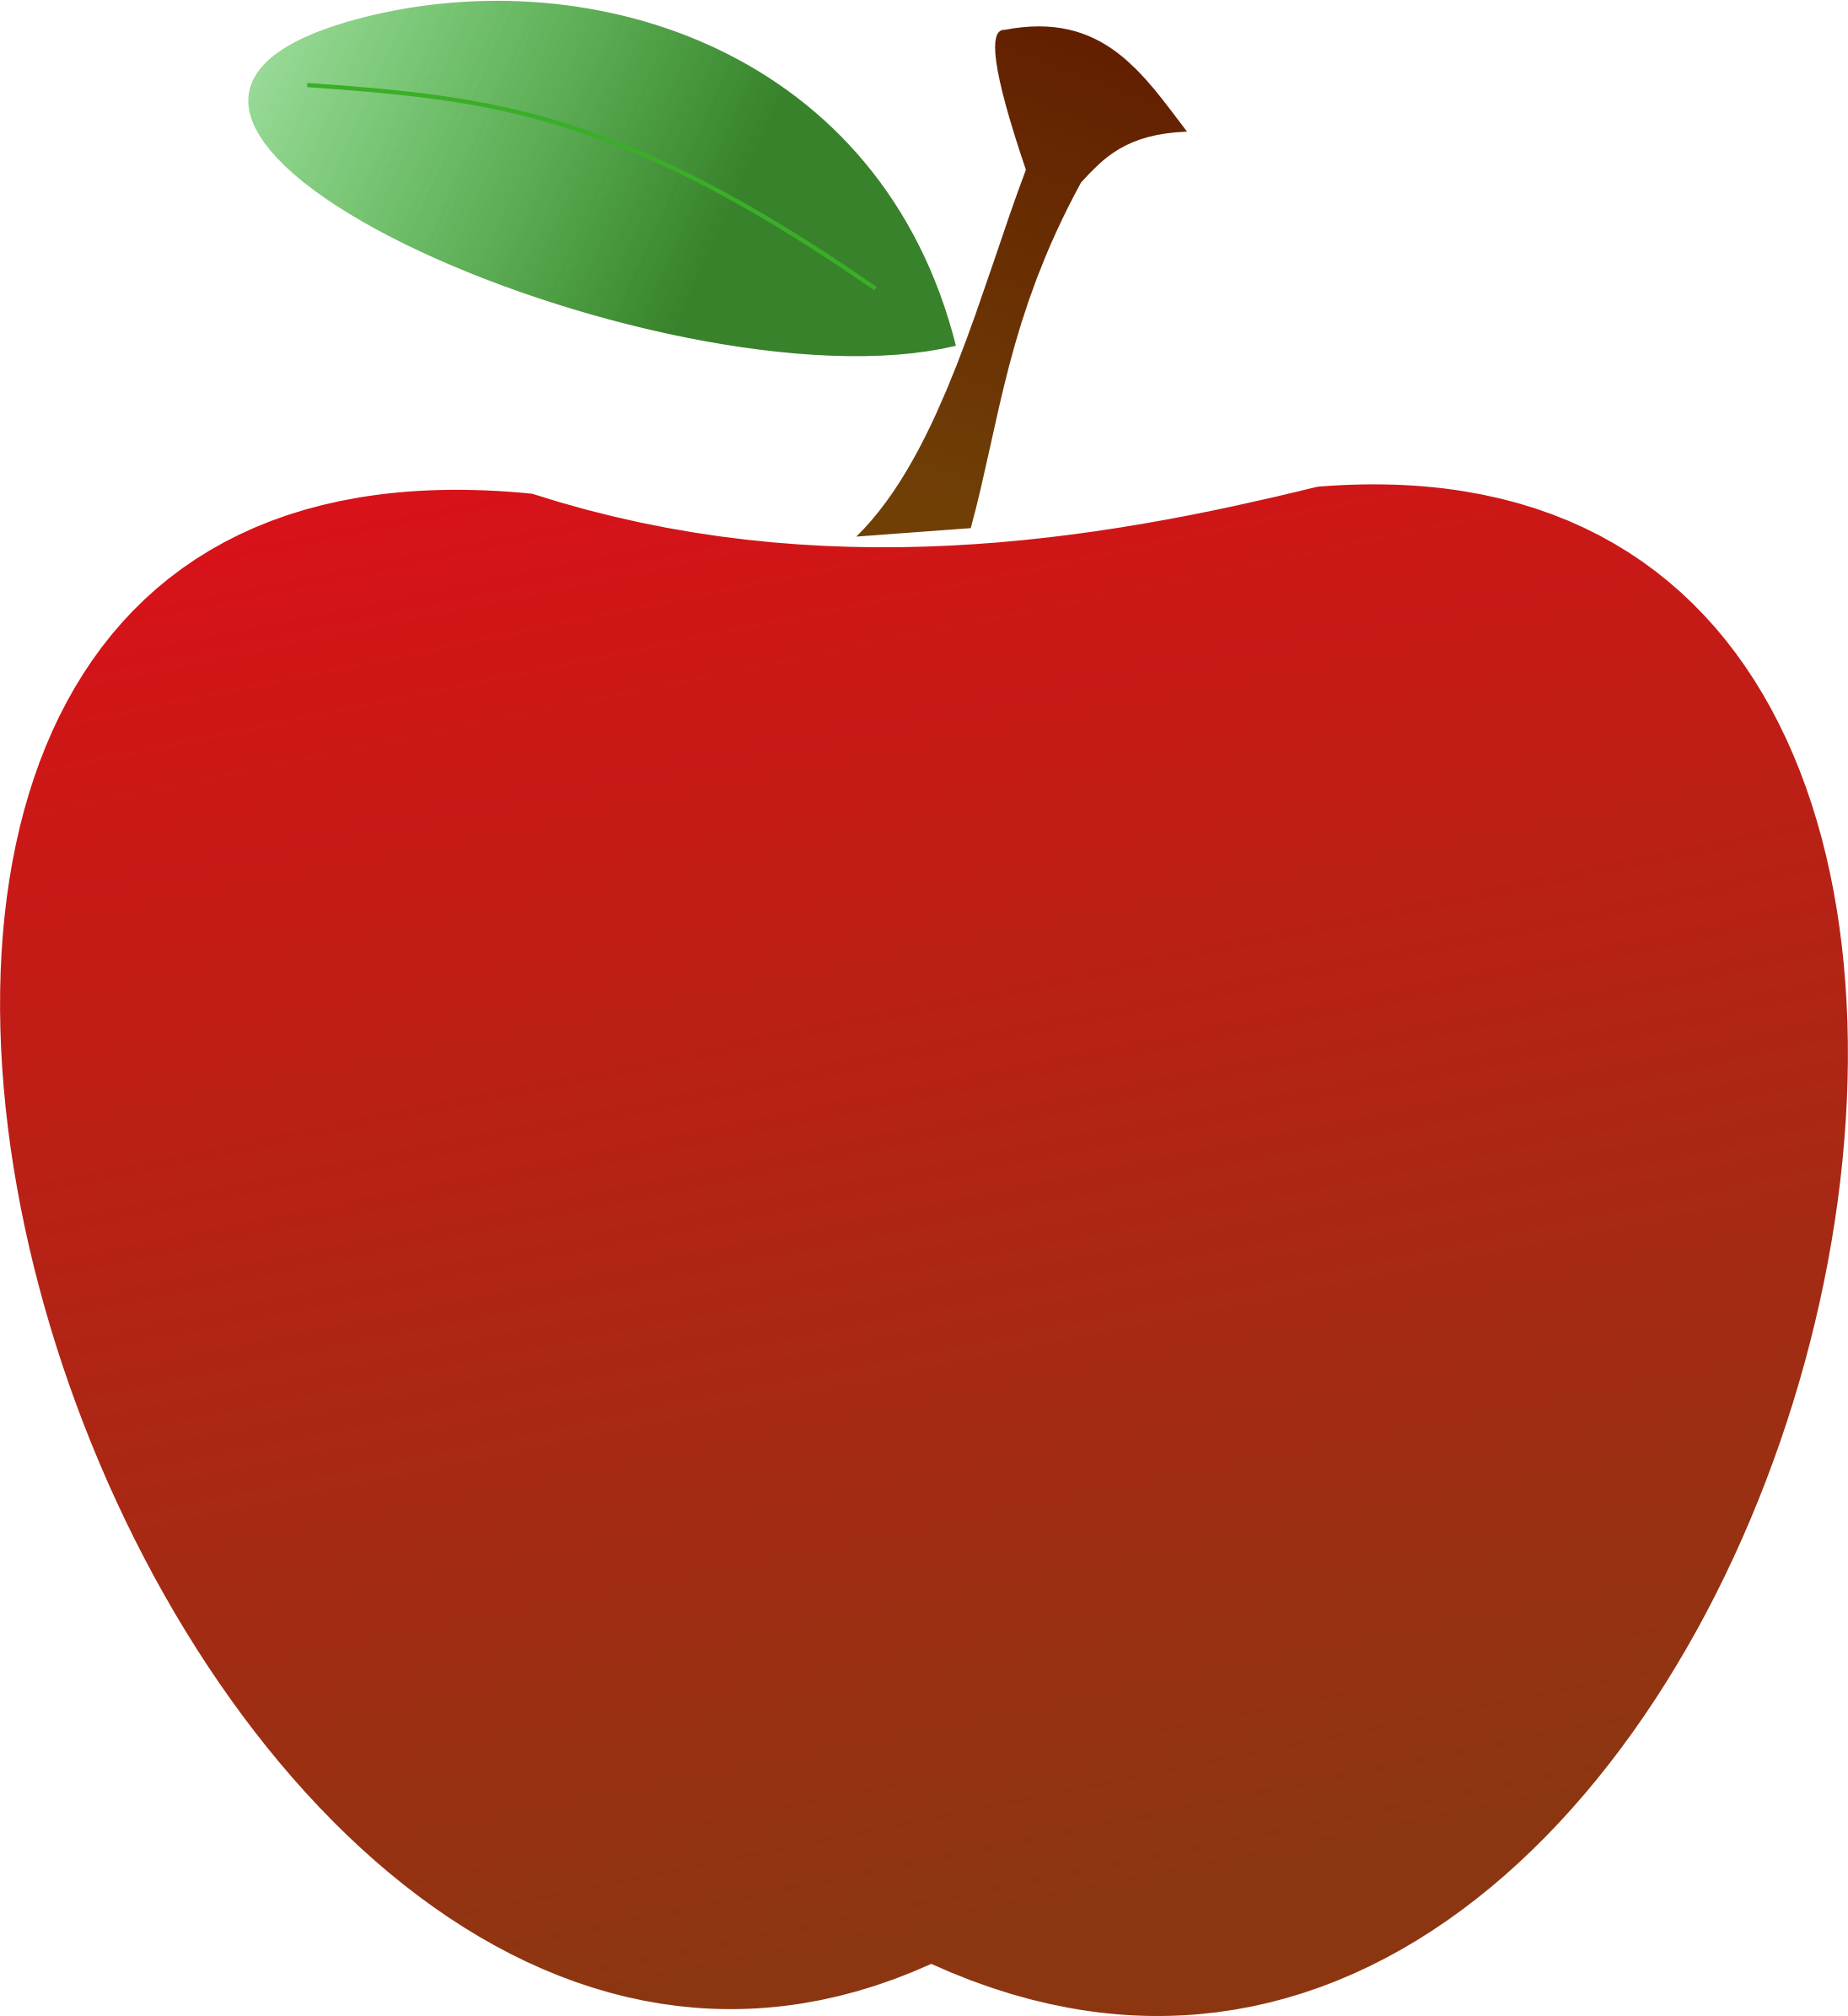 Apple cartoon png. Simple red icons free